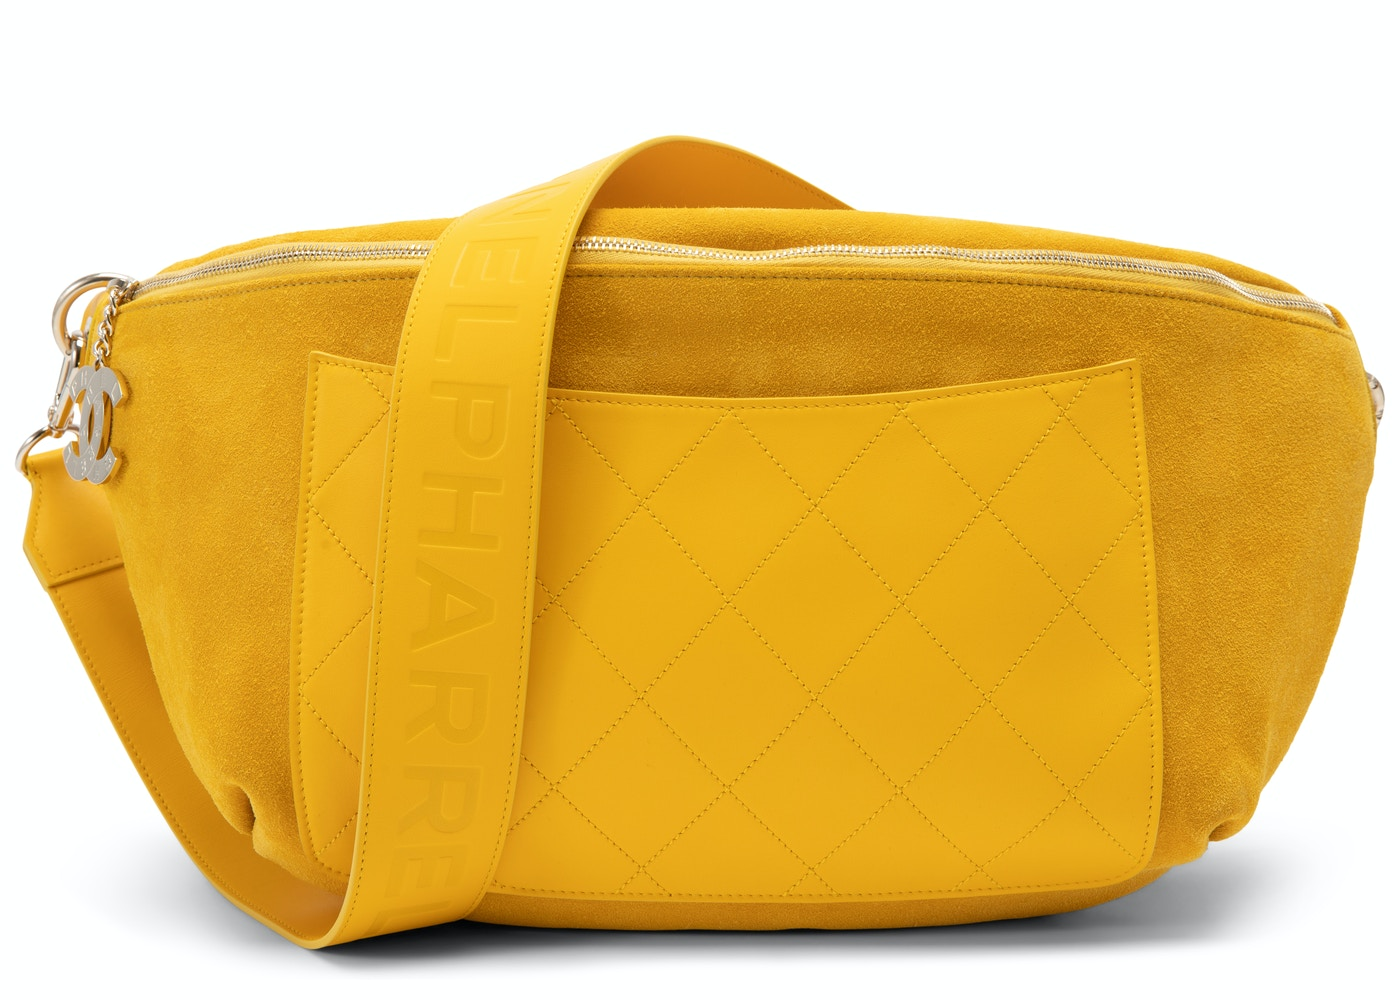 726ad3391e7 Sell. or Ask. View All Bids. Chanel x Pharrell Waist Bag Yellow